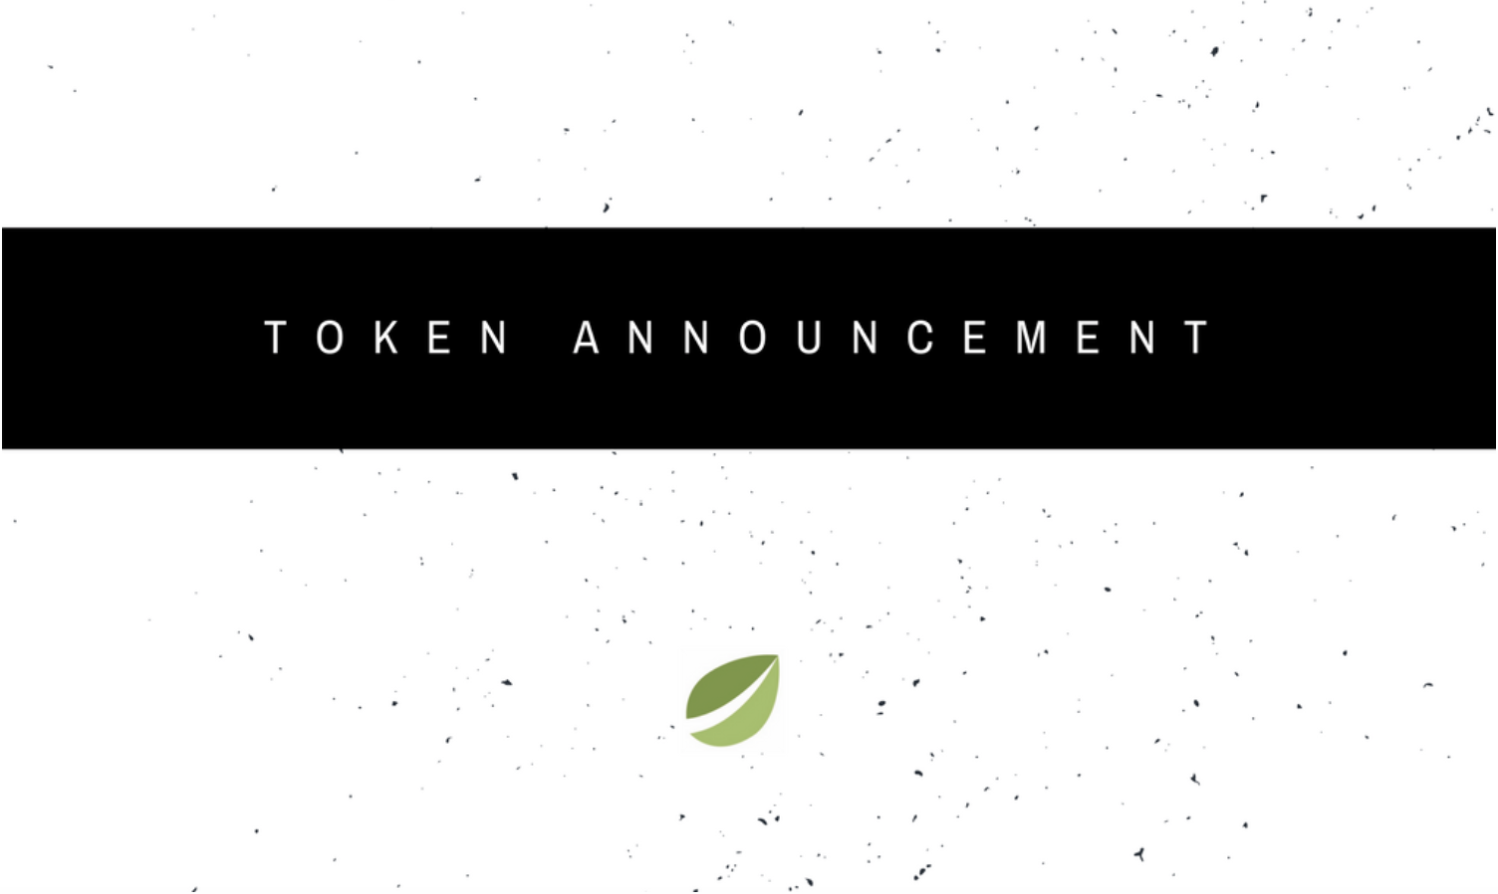 Bitfinex Introduces Trading For 12 New Ethereum Tokens